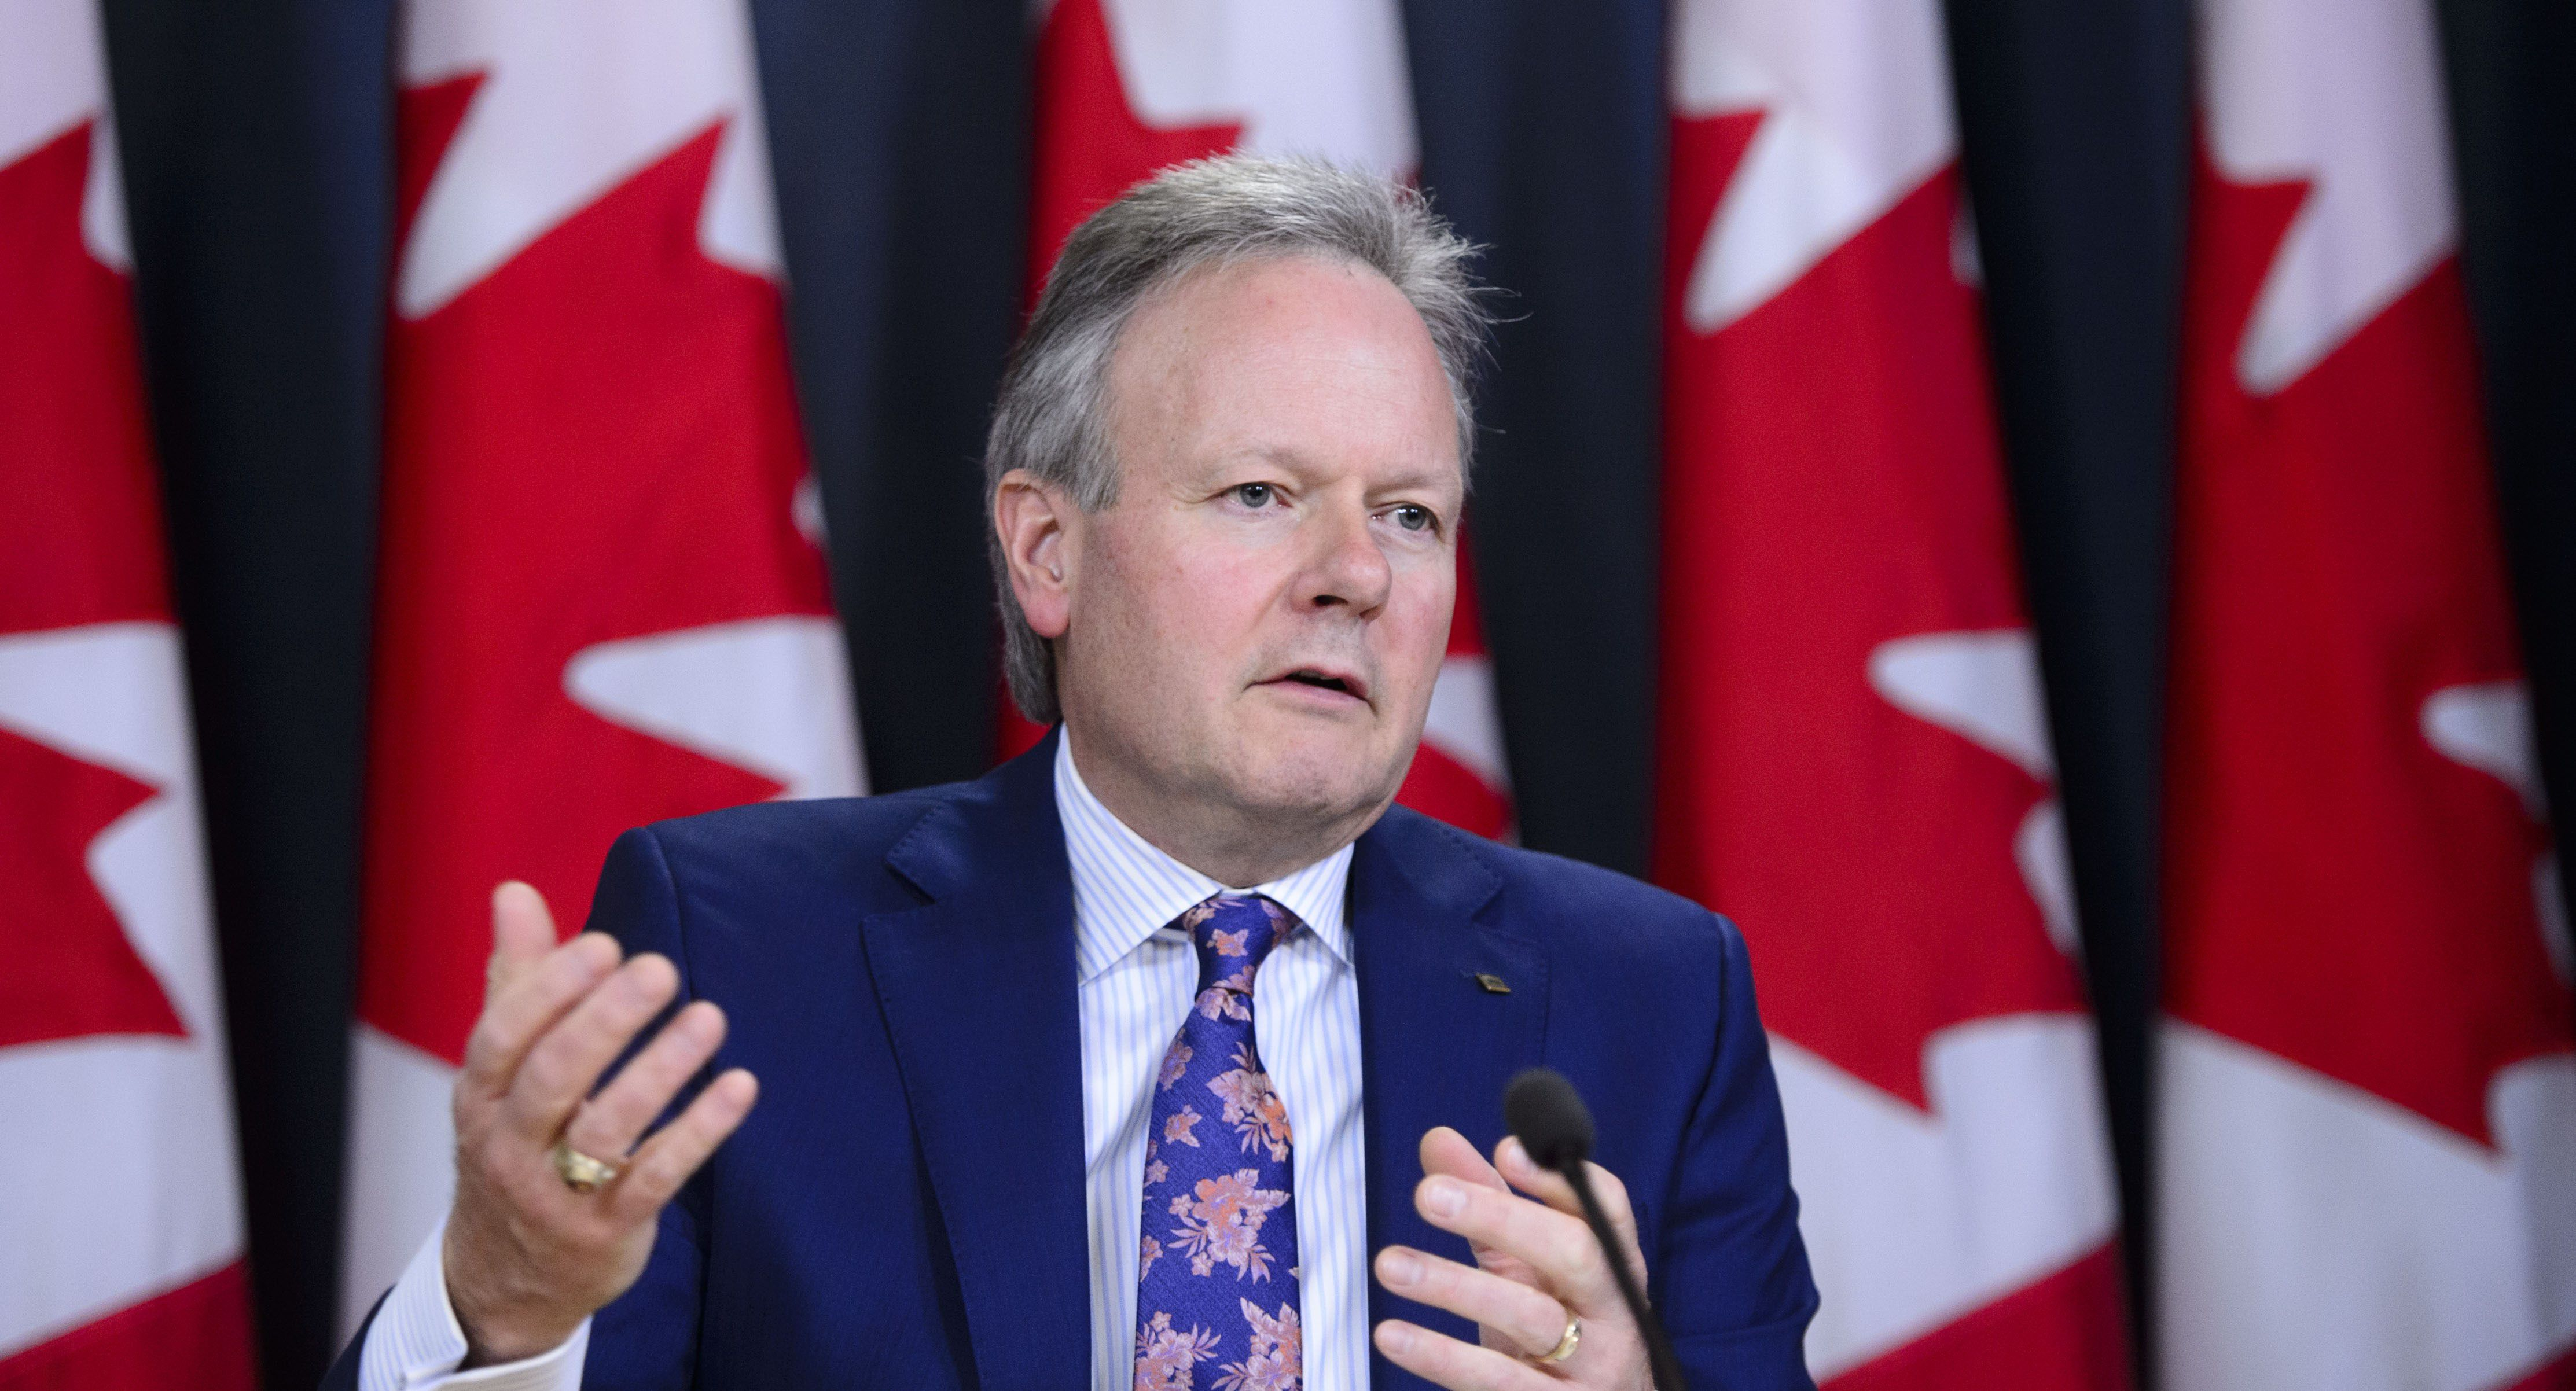 Possibility of recession, spike in risky borrowing threaten Canada's financial system